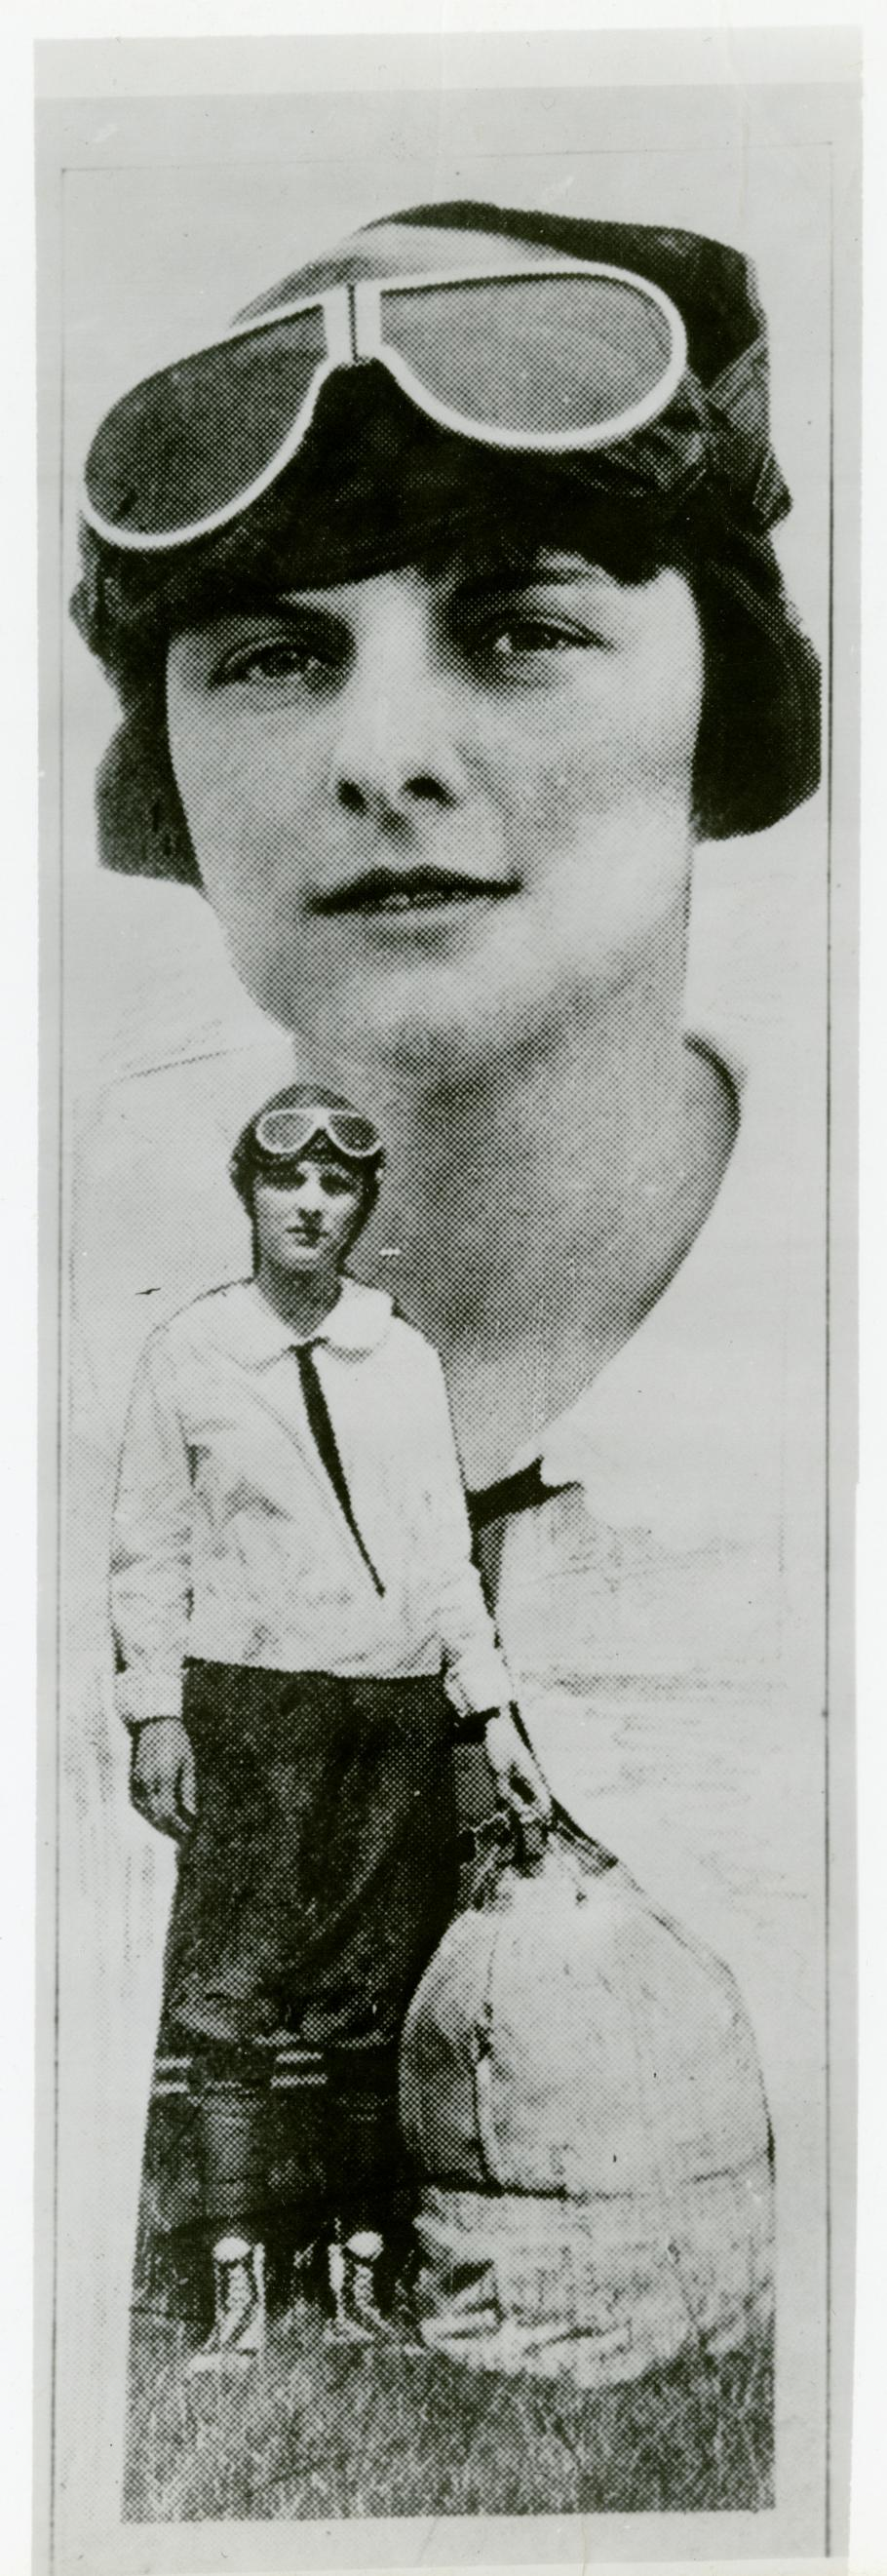 Portrait of a woman superimposed on another photograph of her